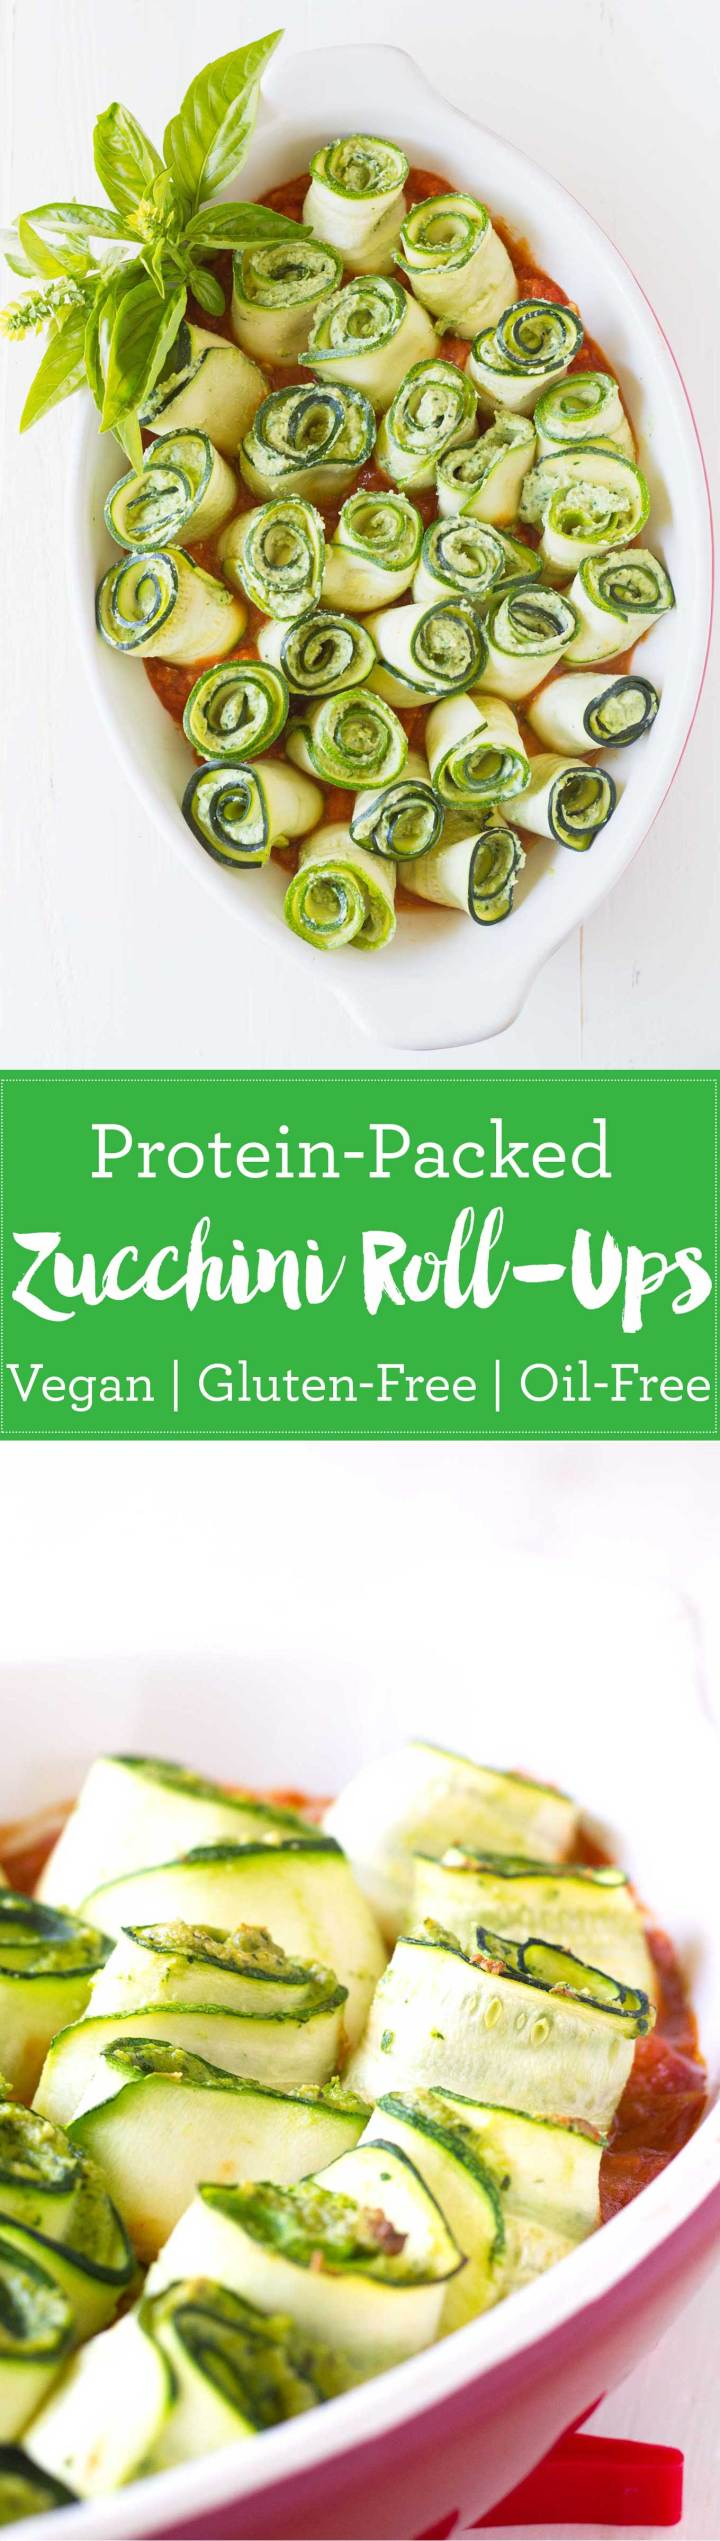 Protein-Packed Zucchini Roll-Ups | Vegan, Gluten-free | https://passtheplants.com